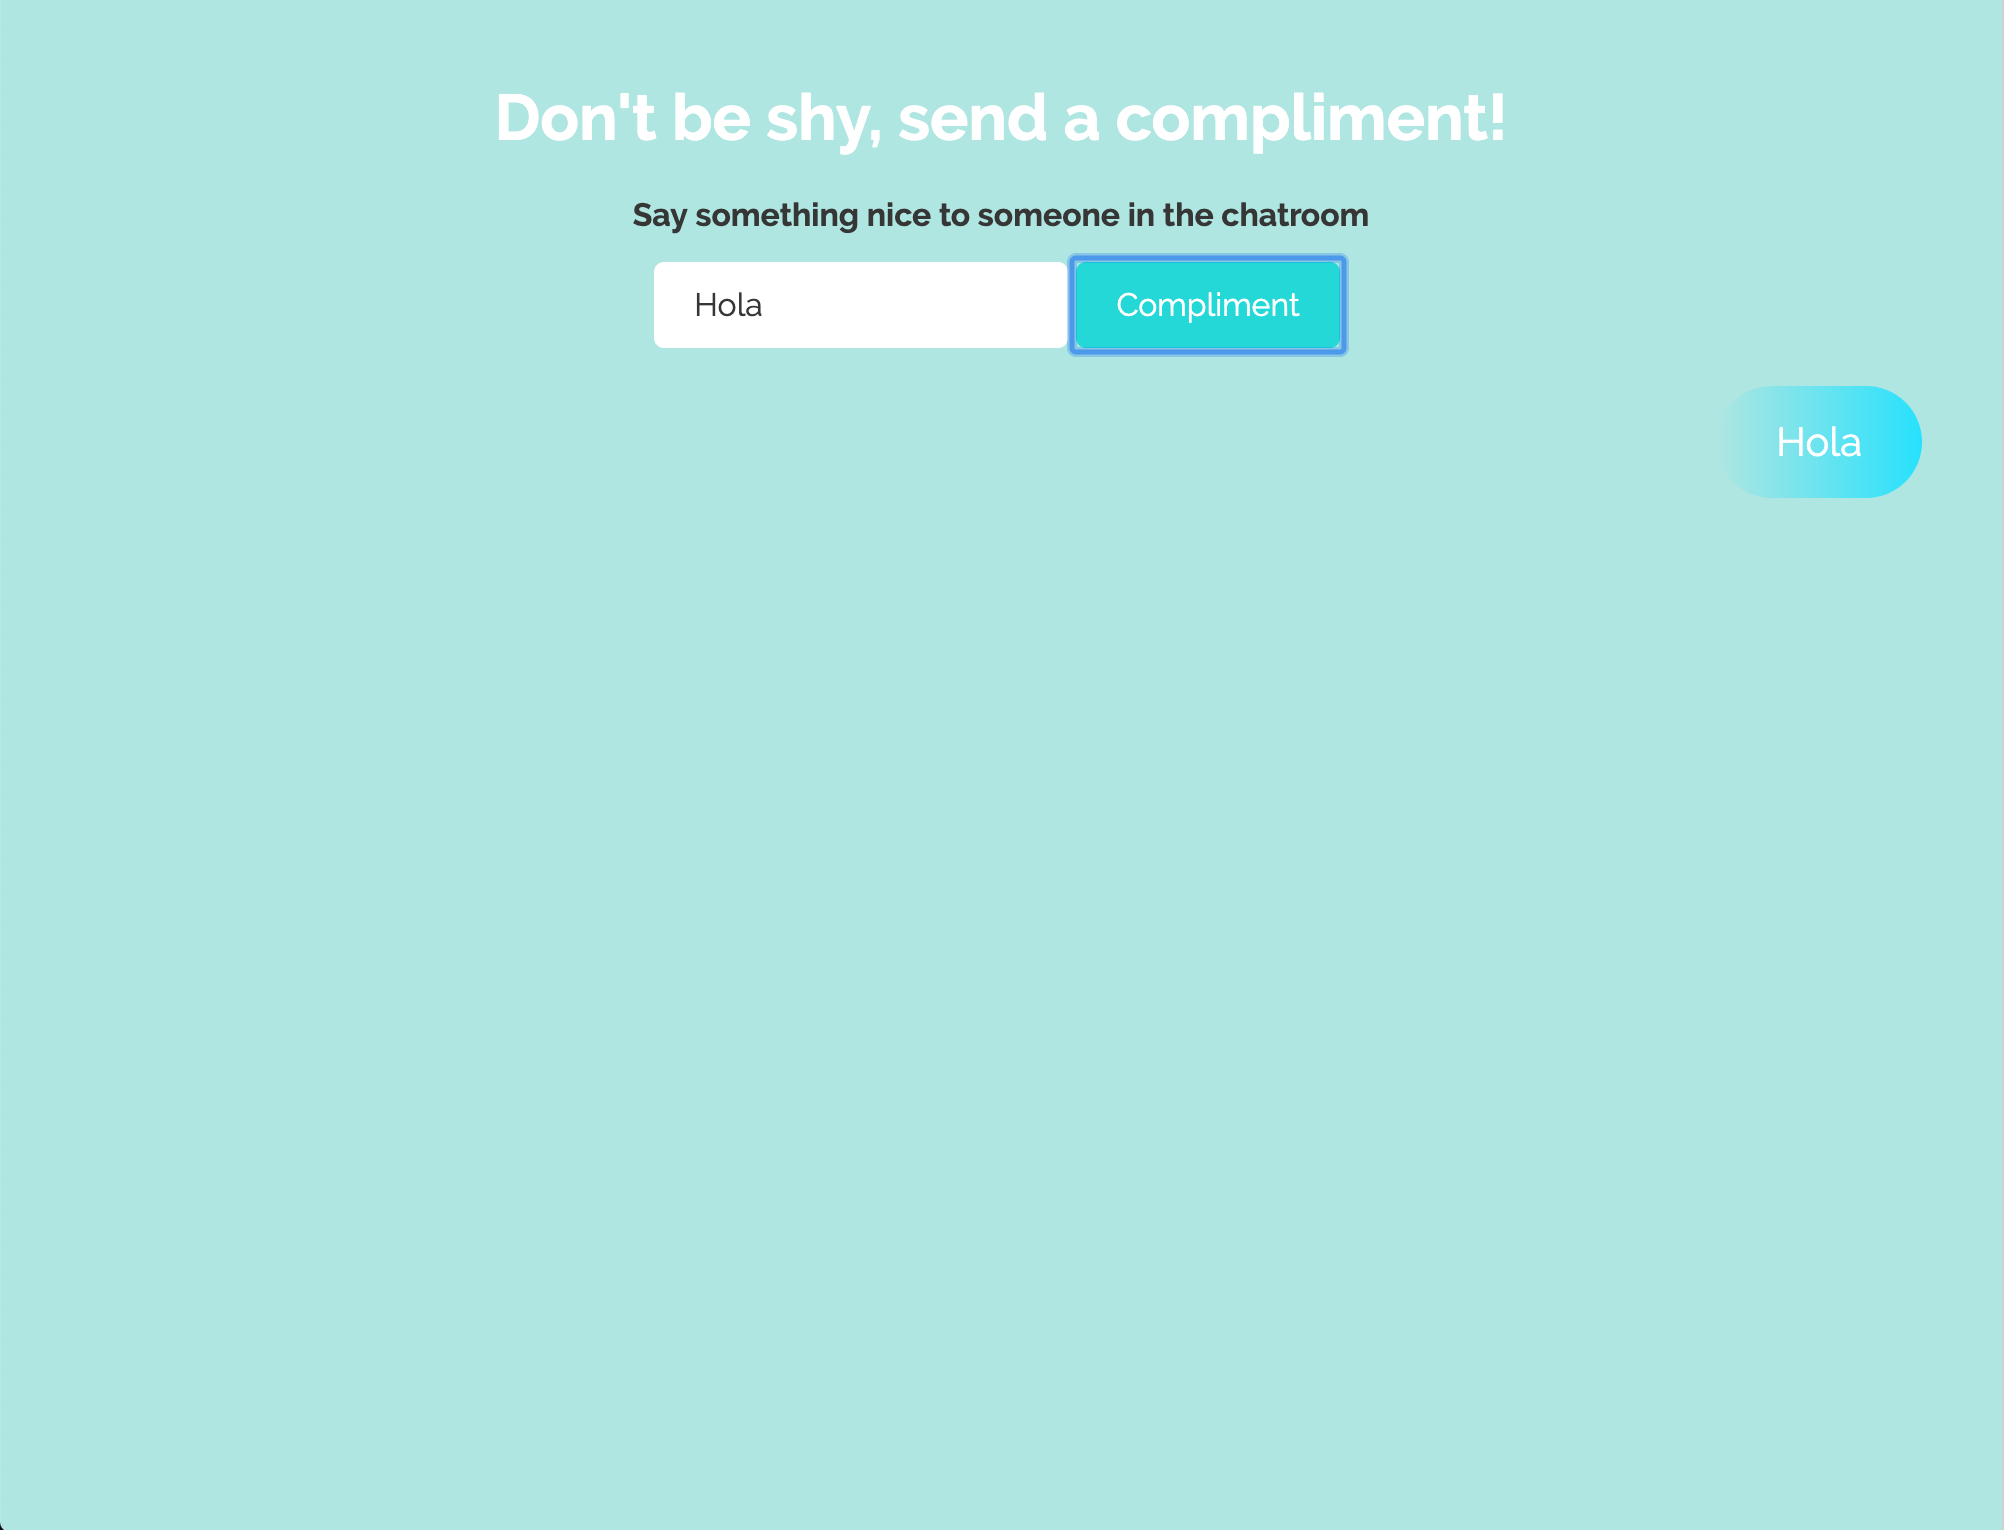 Test 1: Make the sent message visible